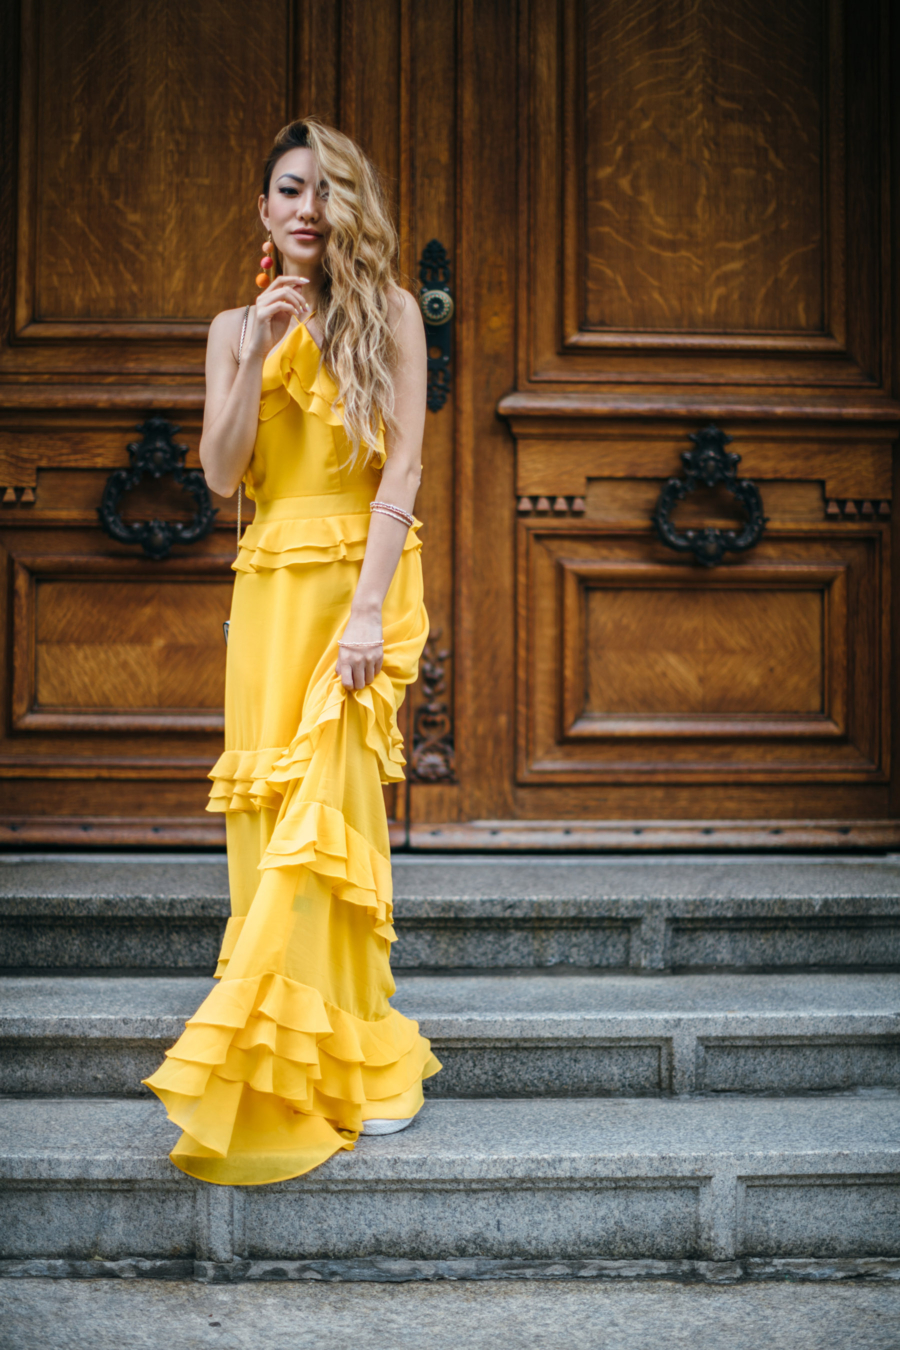 Tiered Ruffle Yellow Dress = 8 Pieces To Achieve The Modern Romantic Look // NotJessFashion.com